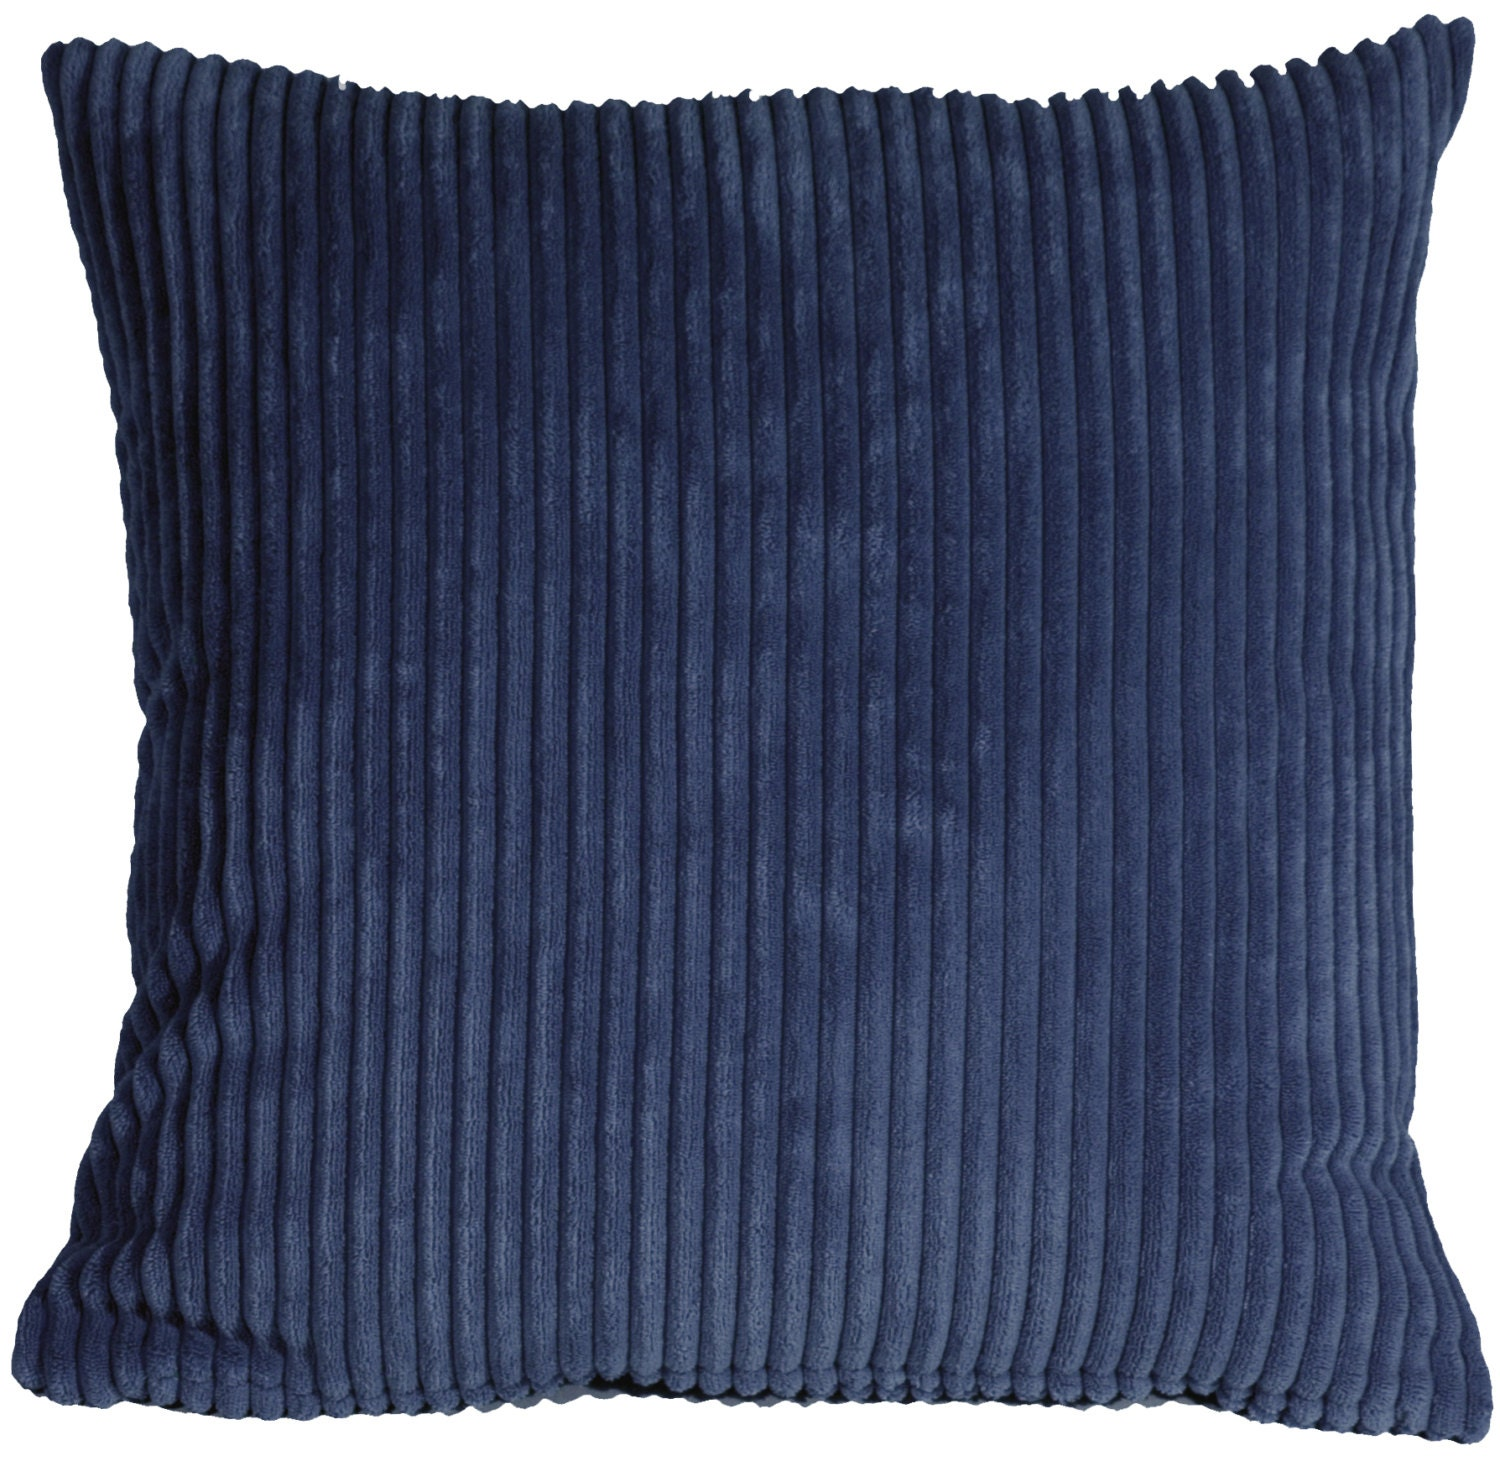 Dark Blue Throw Pillow : Wide Wale Corduroy 18x18 Dark Blue Throw Pillow